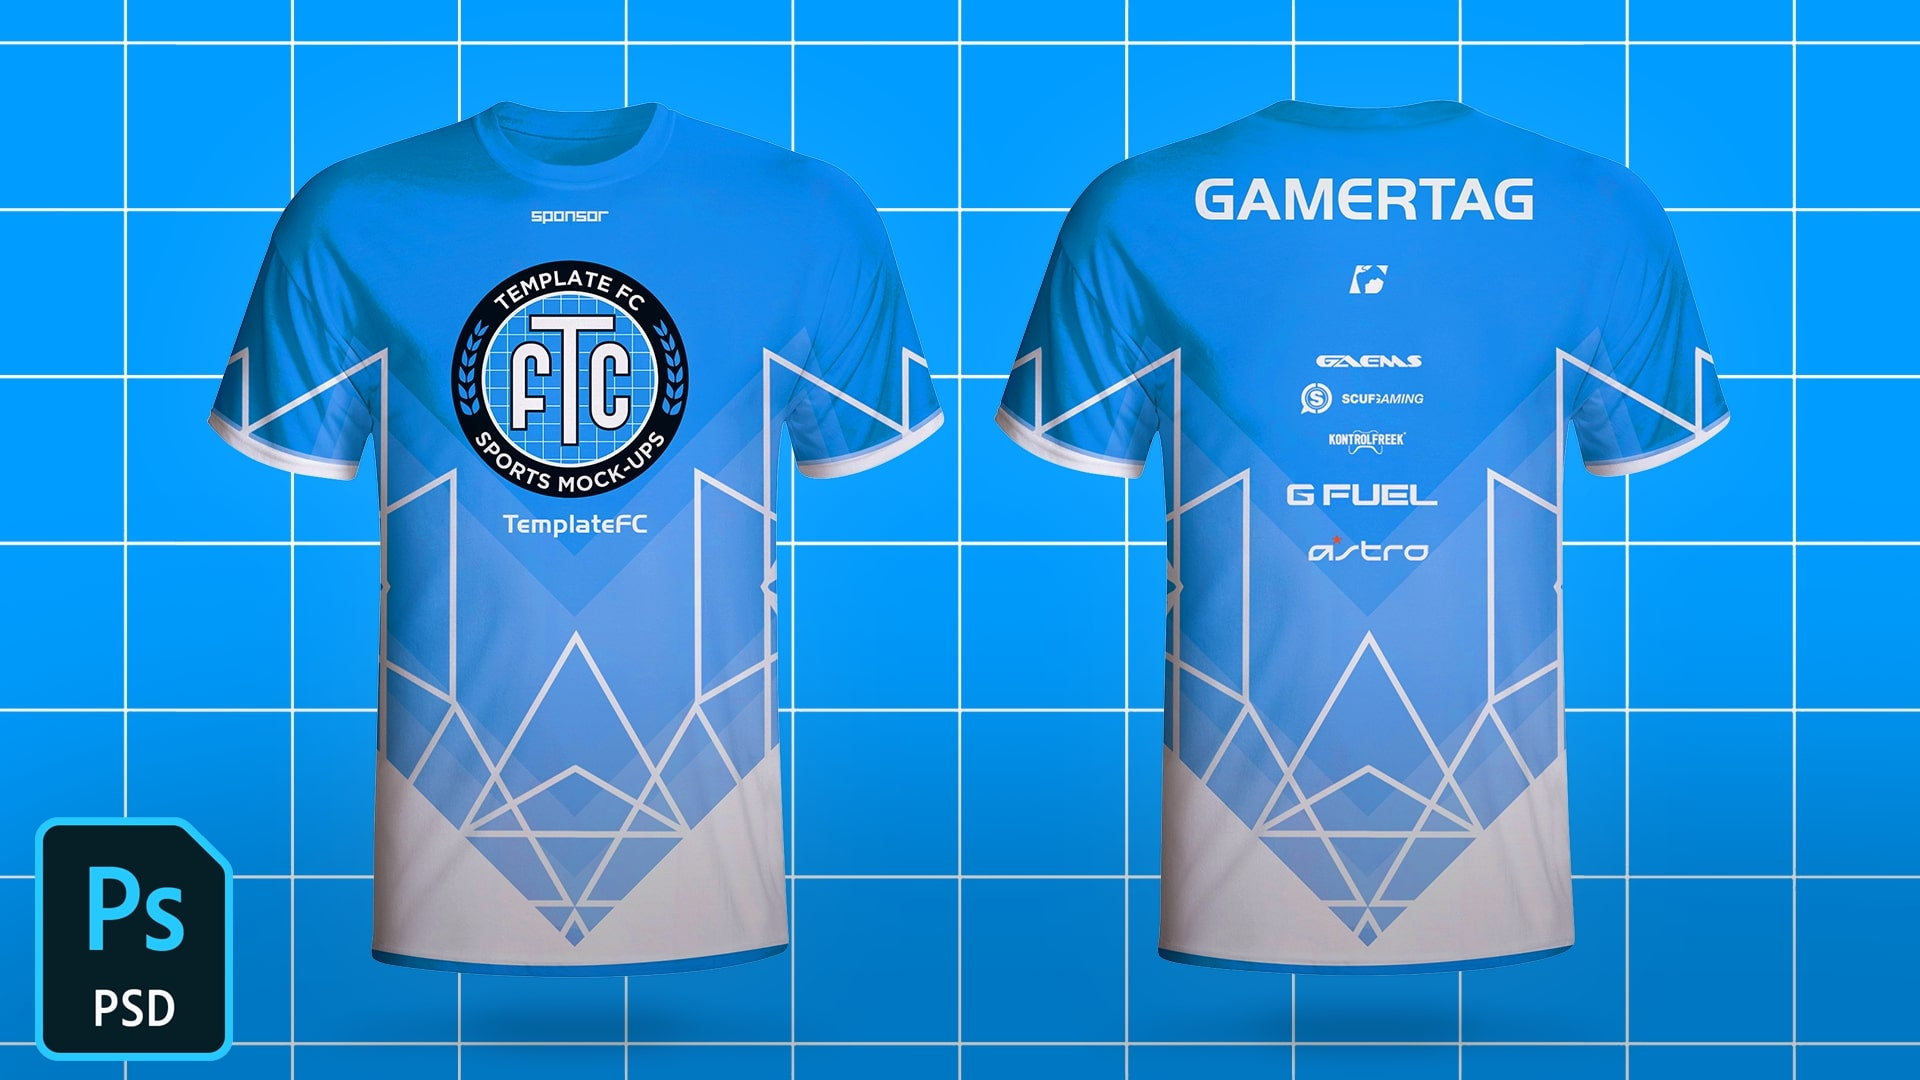 jersey mockup 40 free fabulous jersey psd templates for your design portfolio. Esports Jersey Template Mock Up Free Template Fc Free